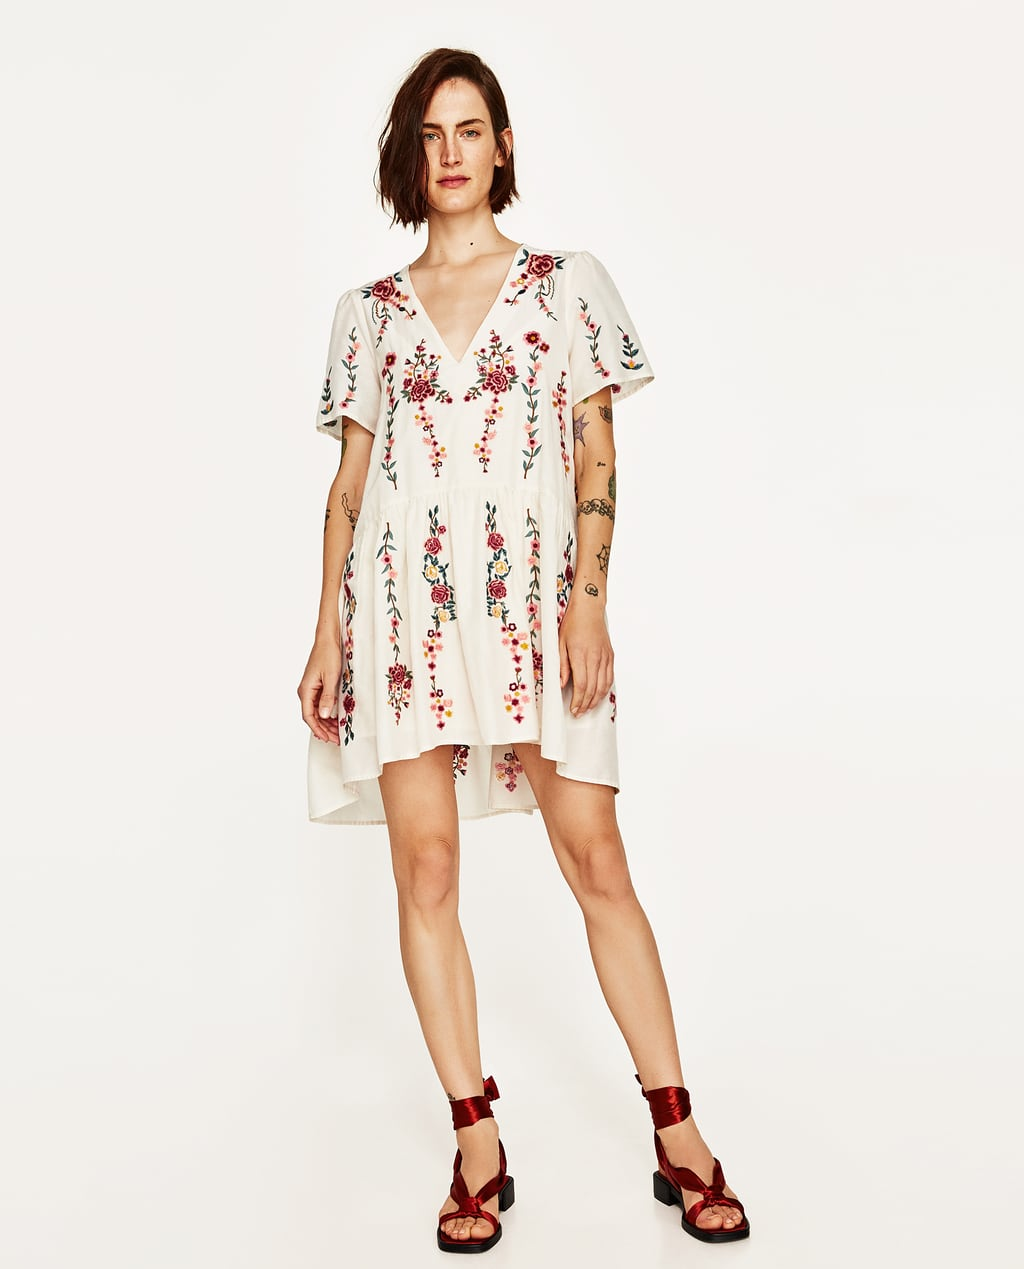 White dress at zara - Image 1 Of Floral Embroidered Dress From Zara